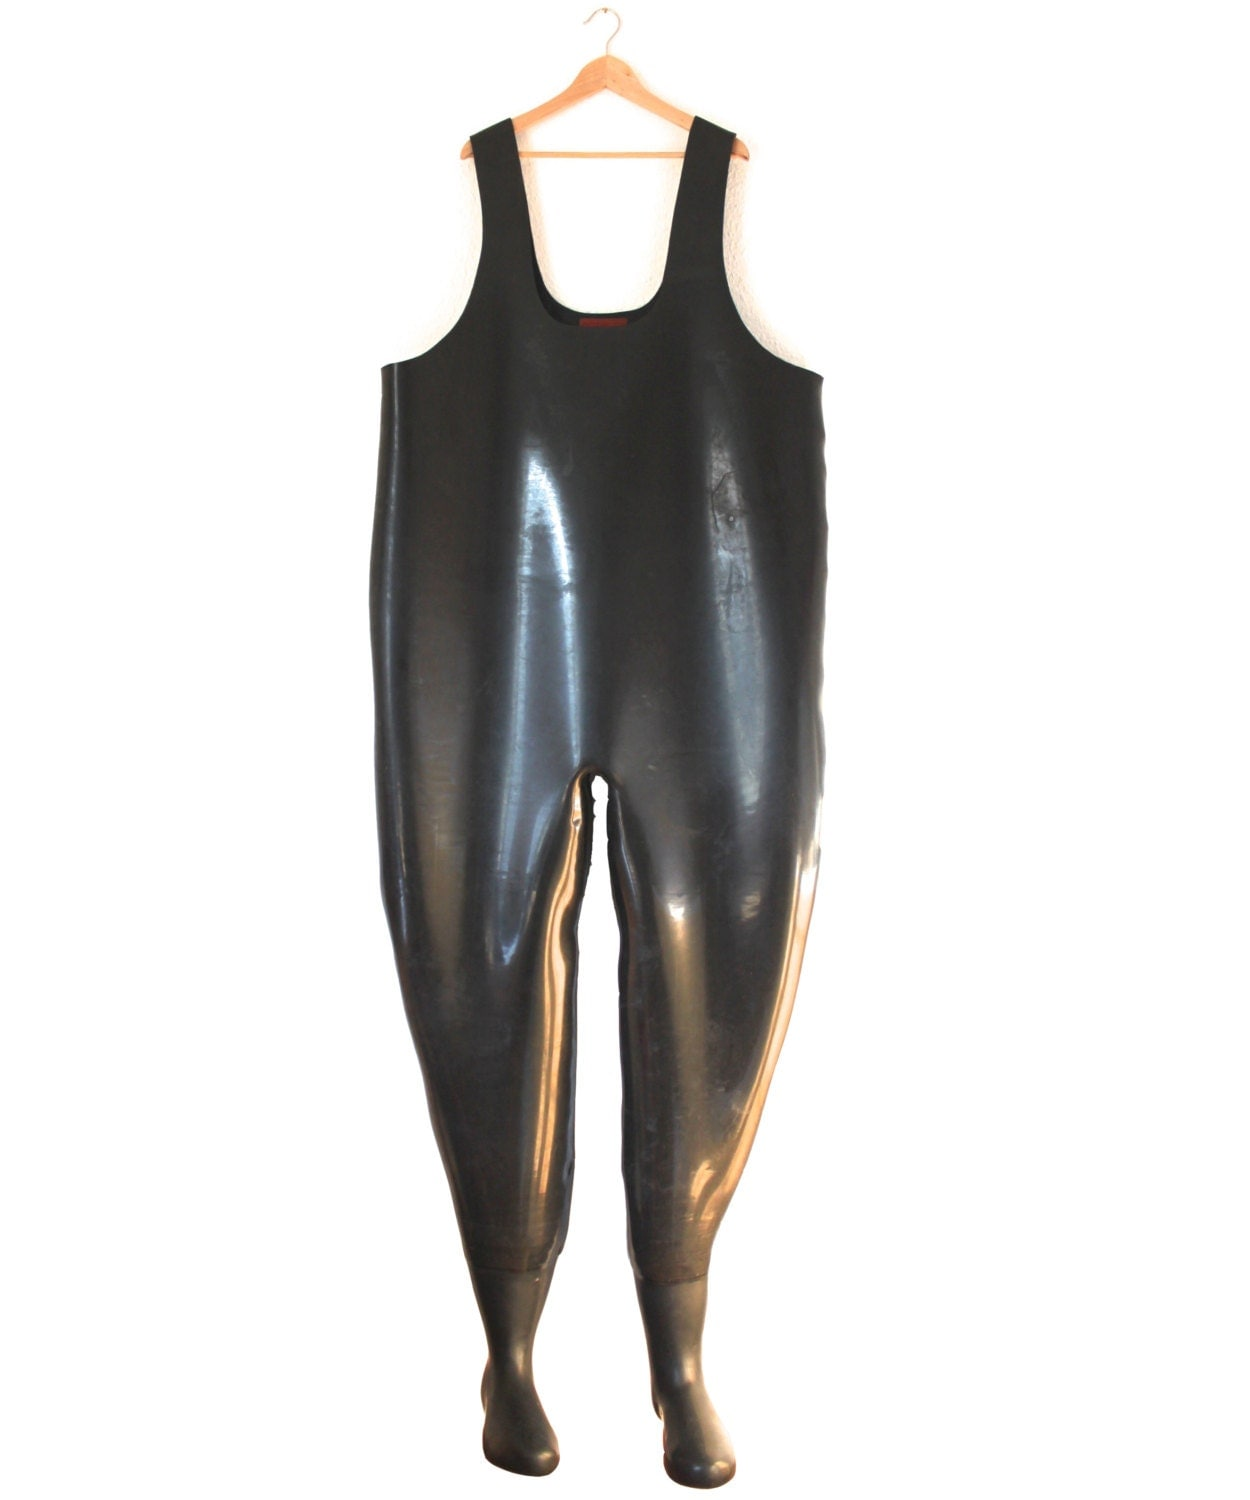 Heavy Rubber Dungarees Chest Waders Made From 15 Mm Extra